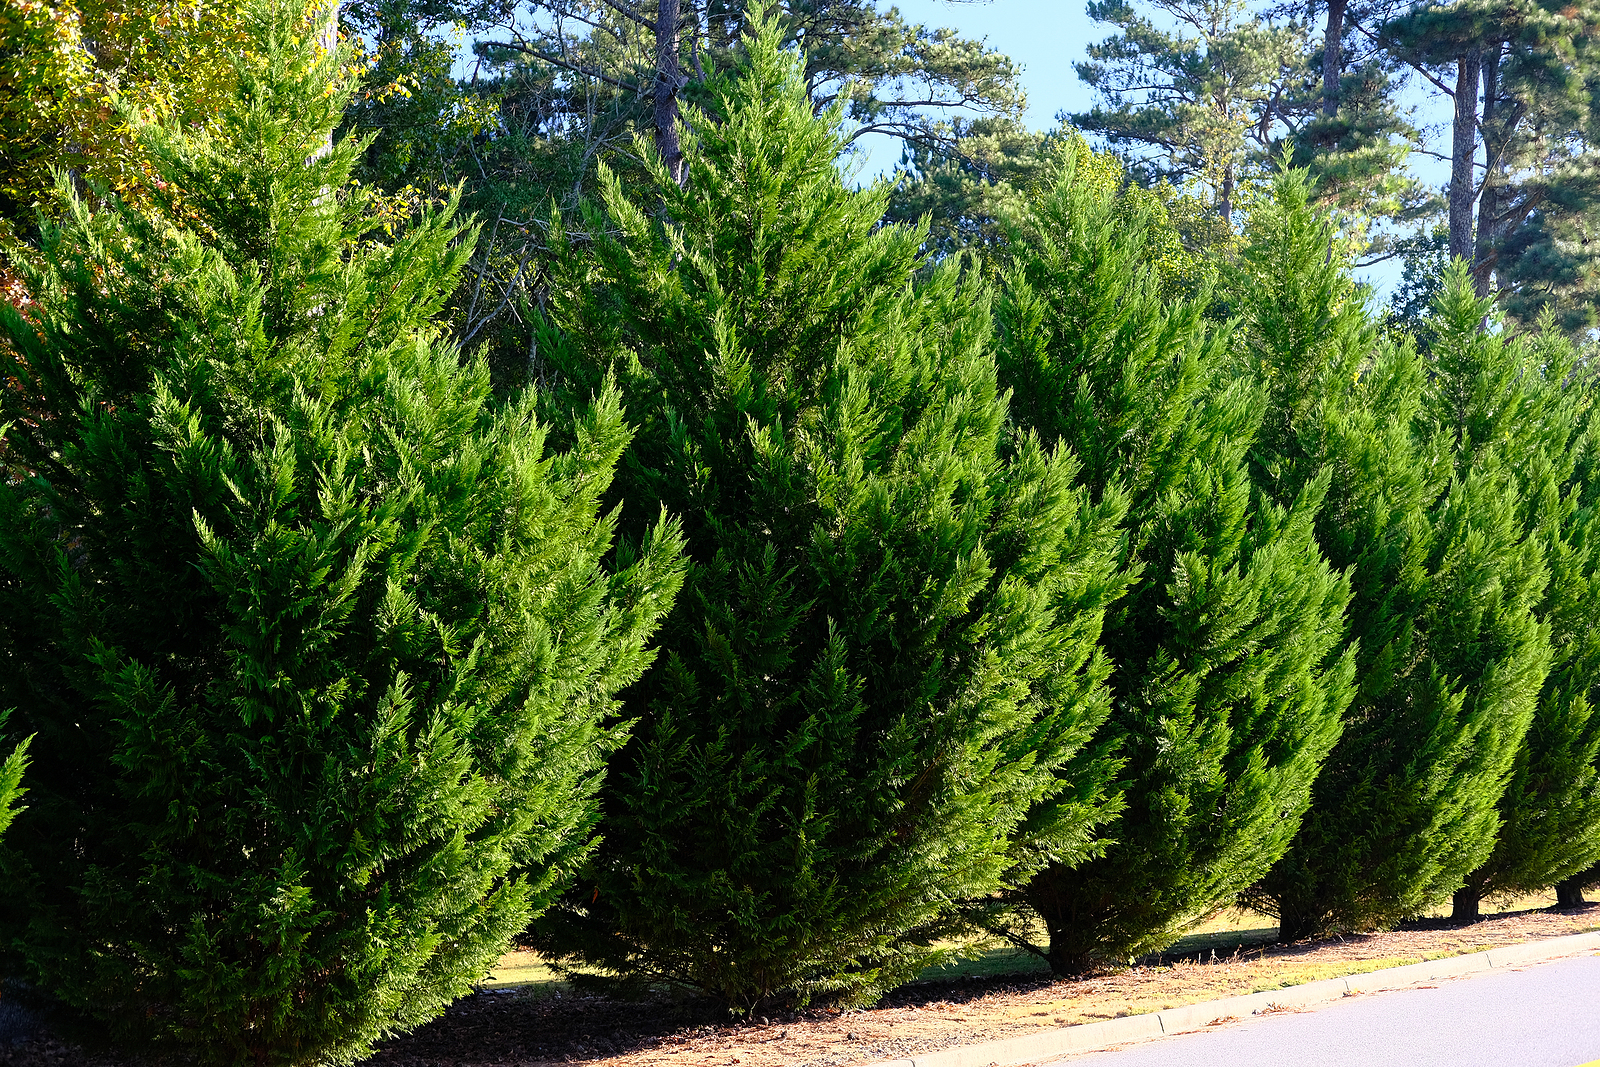 Leyland Cypress trees in a row